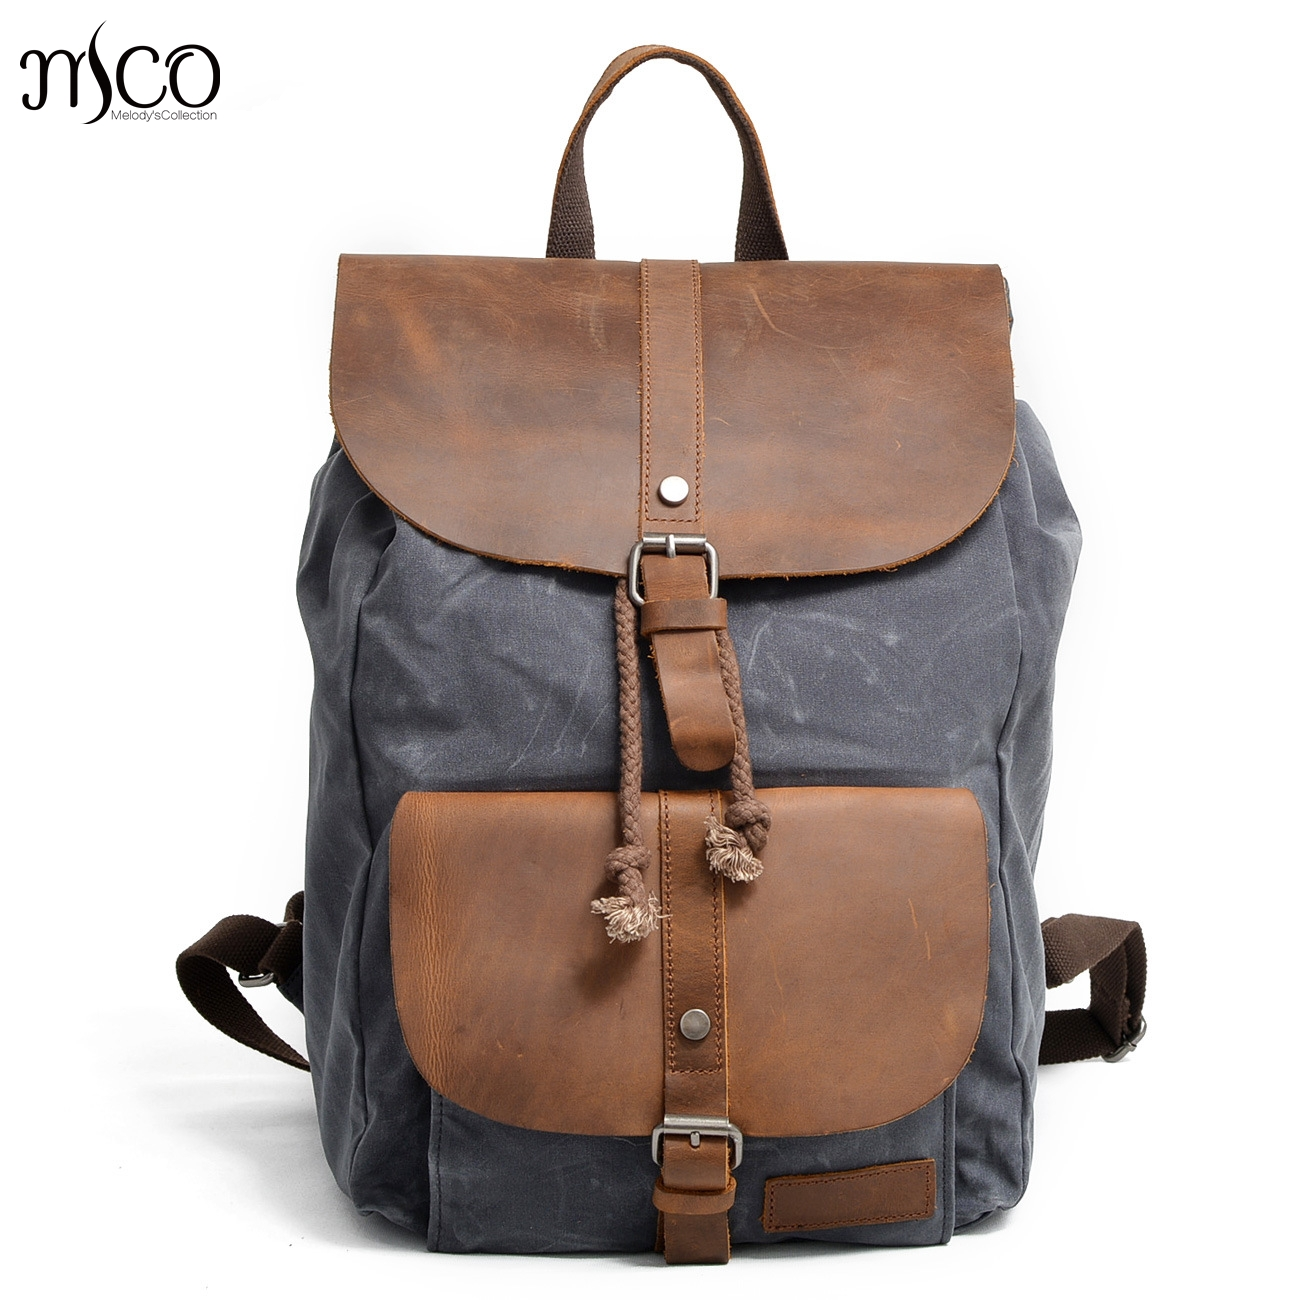 MCO 2018 Vintage Waxed Canvas Men Backpack Military Oiled Leather School Backpacks Male Business Rucksack Waterproof Travel Bag цена 2017